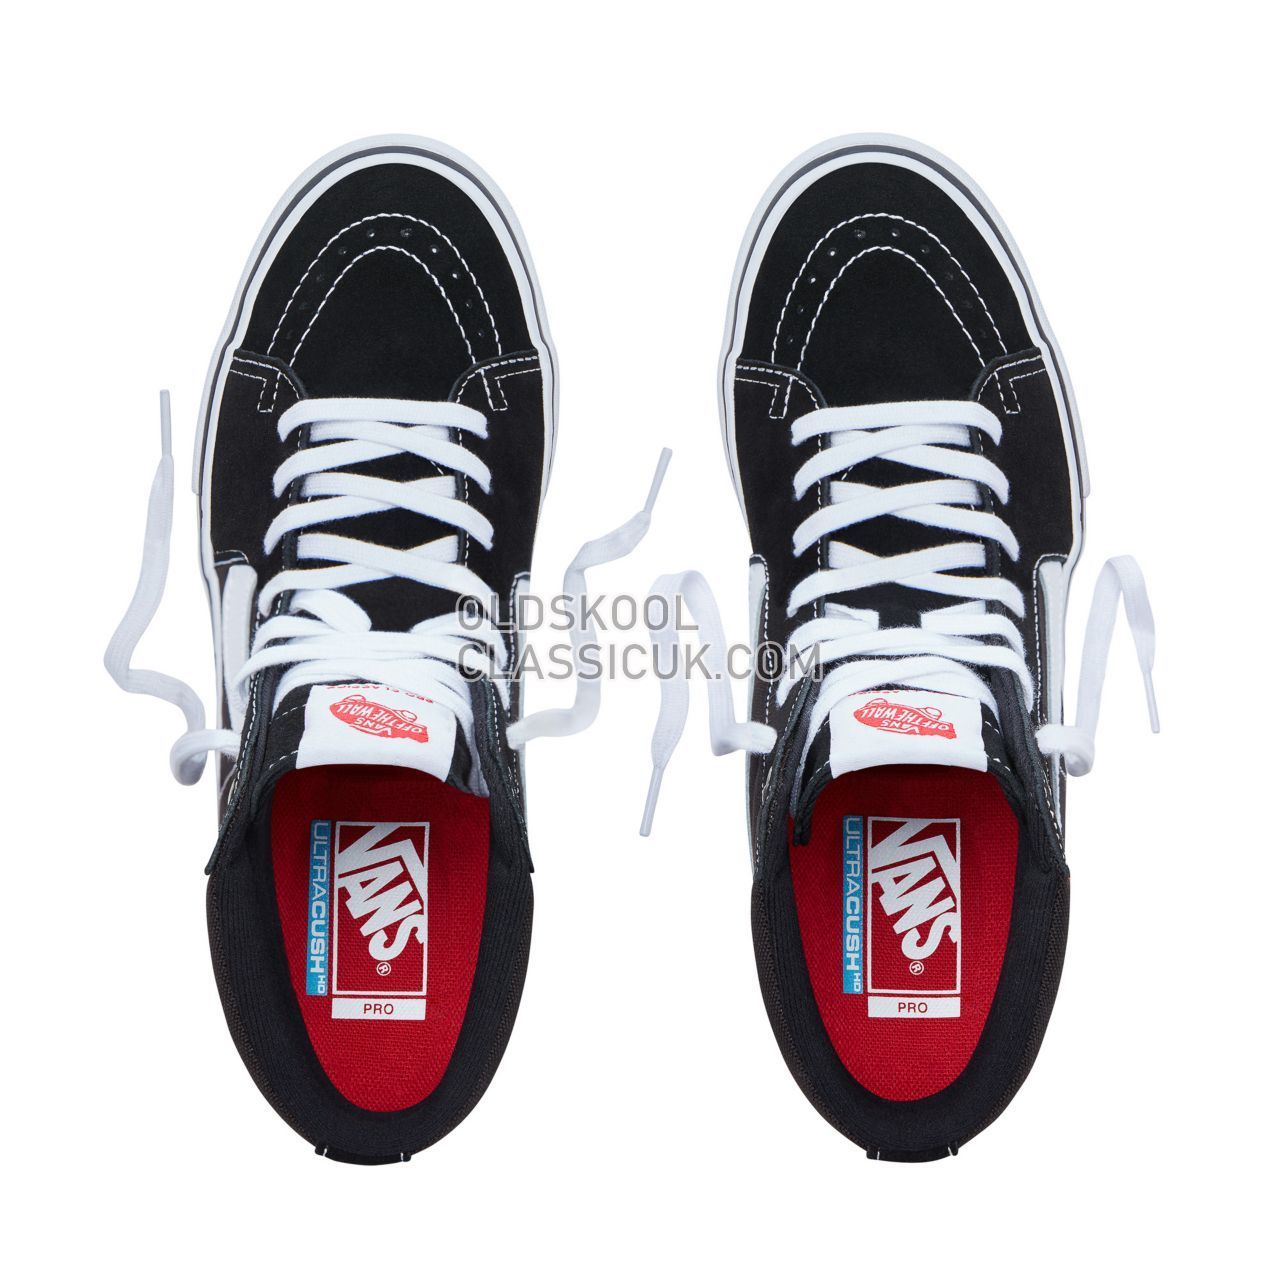 Vans Sk8-Hi Pro Sneakers Mens Black/White VN000VHGY28 Shoes